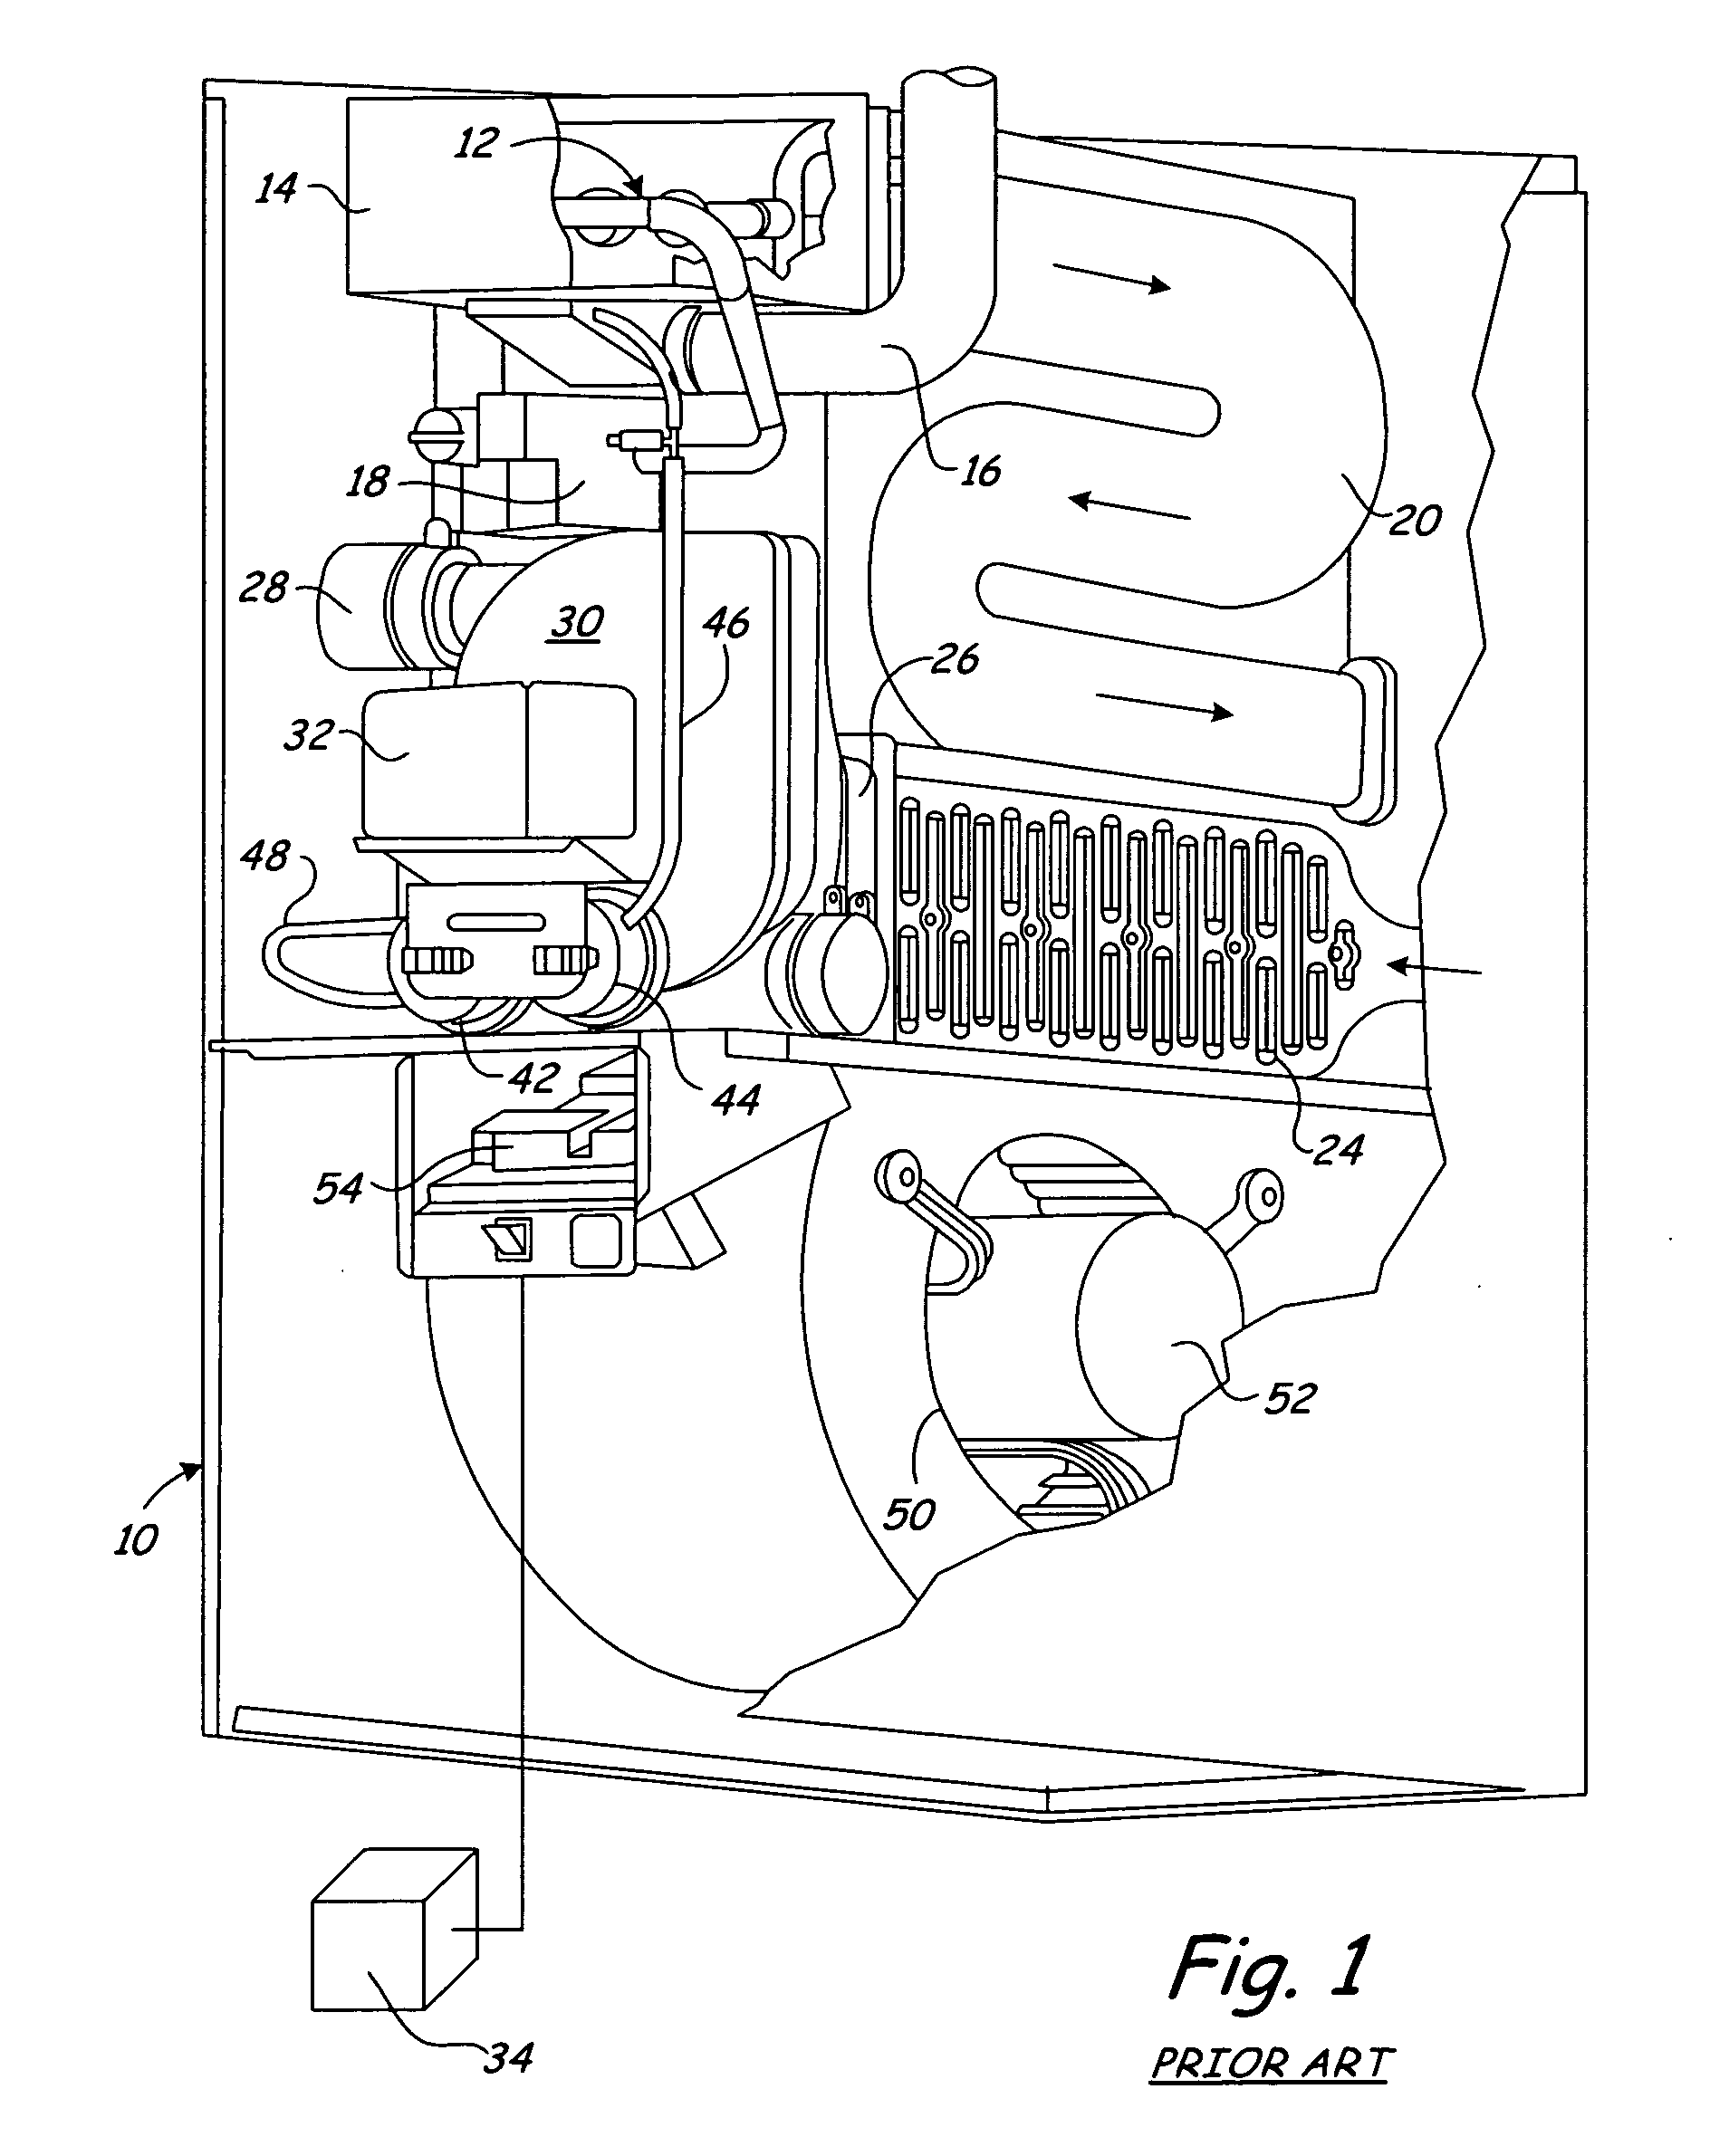 patent us8146584 - pressure switch assembly for a furnace